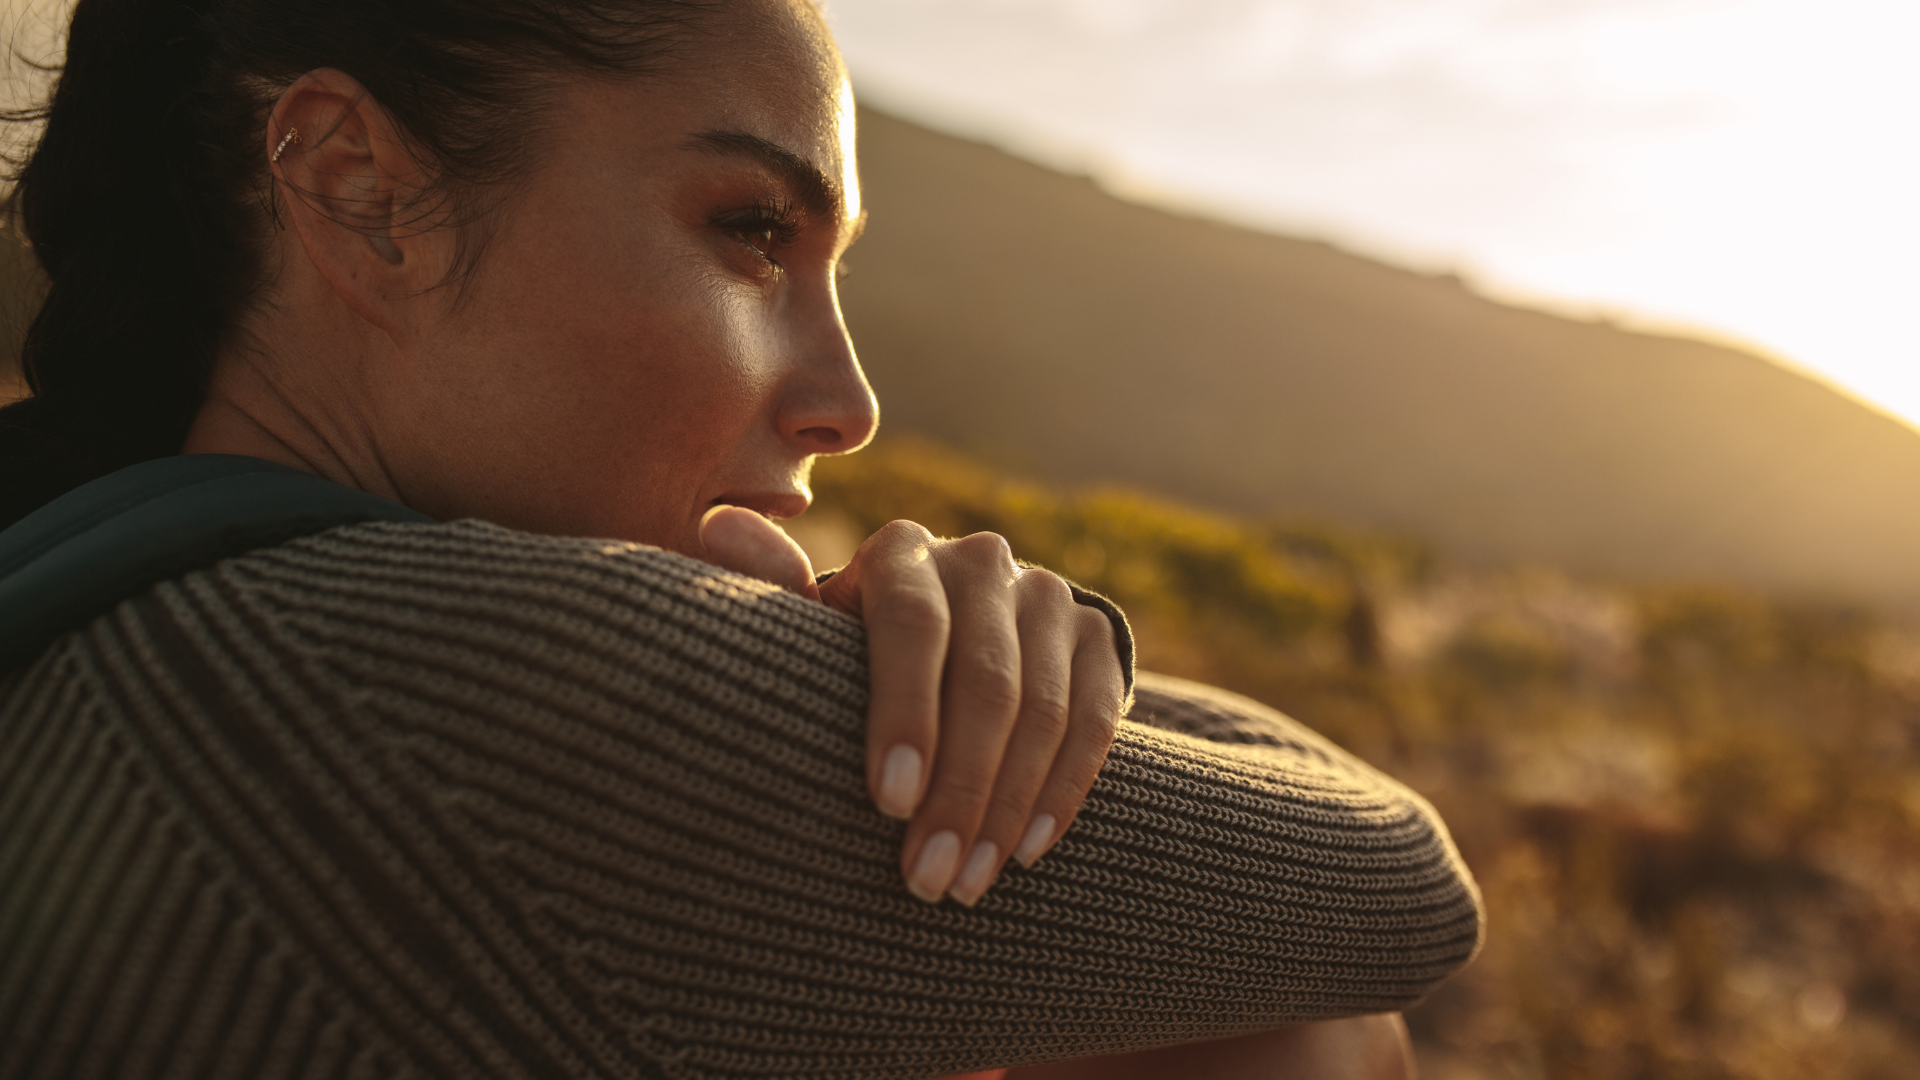 woman gazing toward a setting or rising sun with hills or mountains in the background